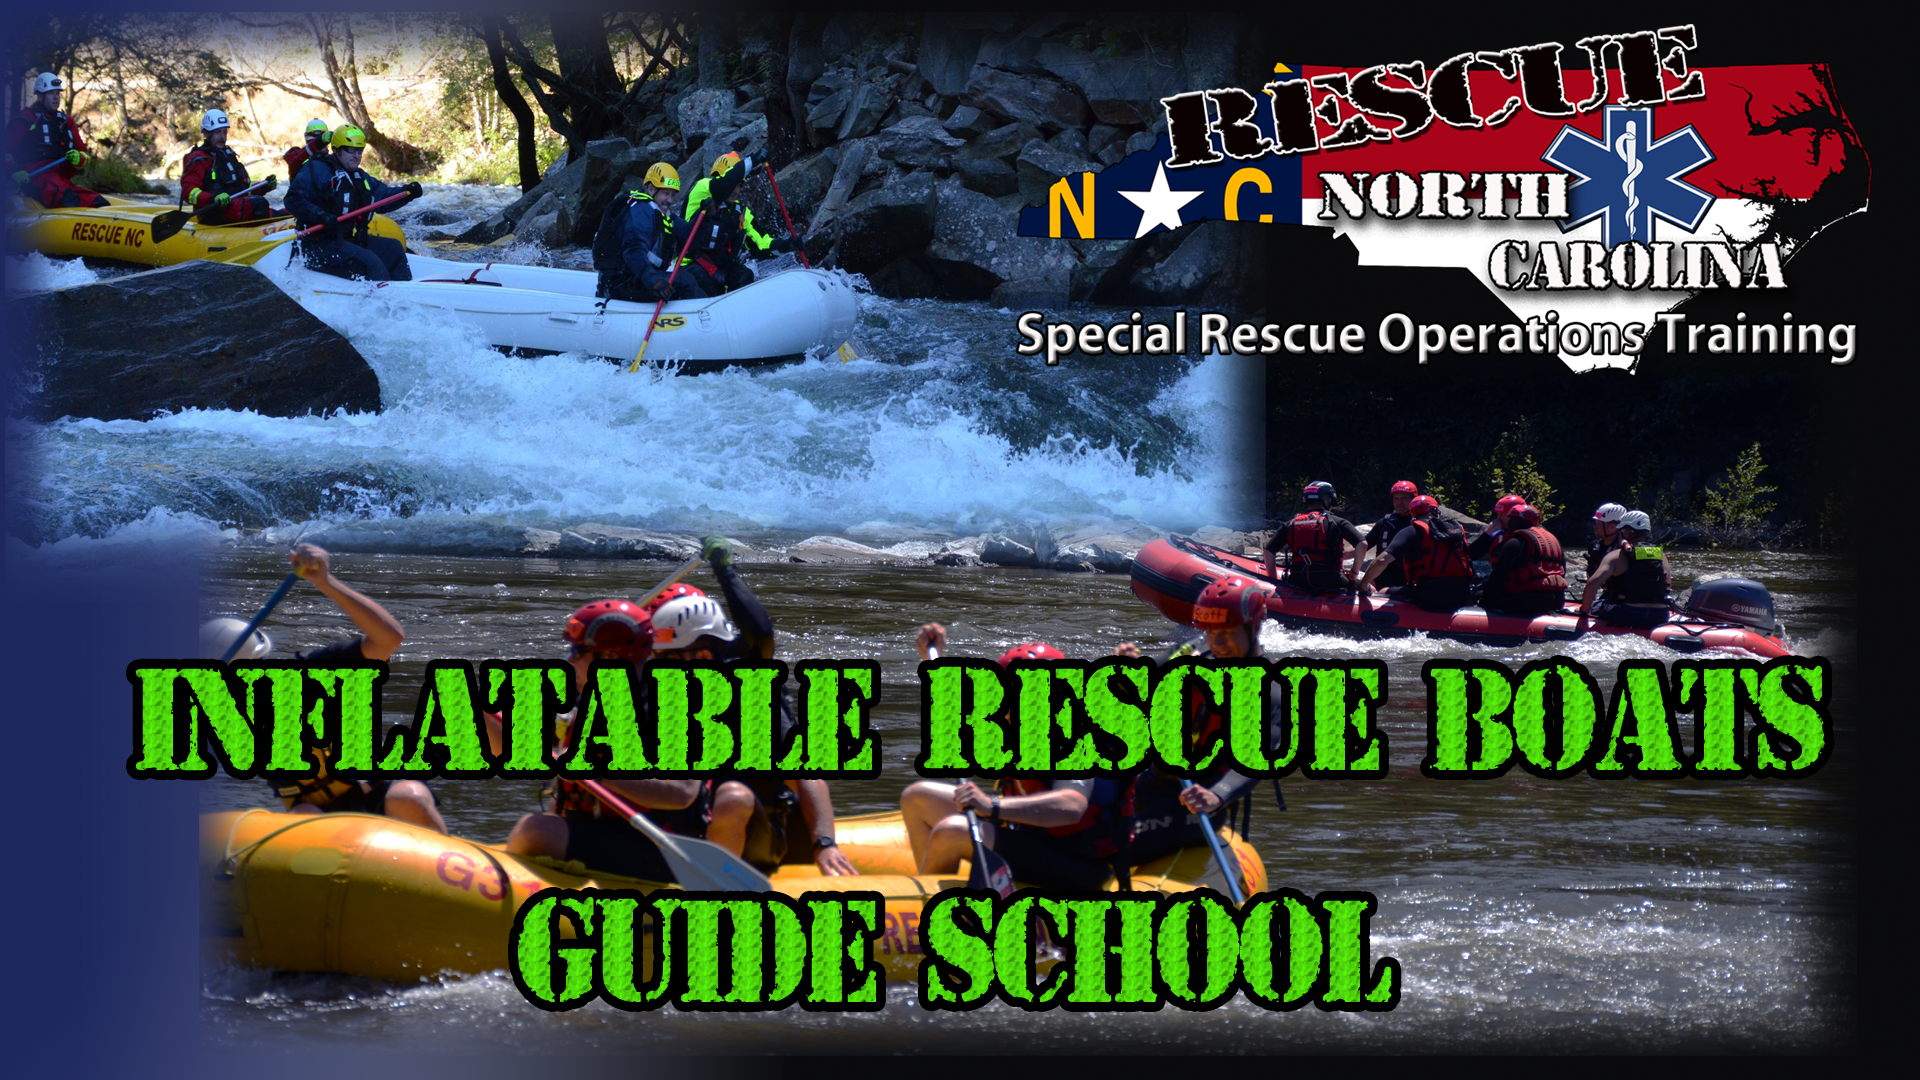 2019 IRB Guide School